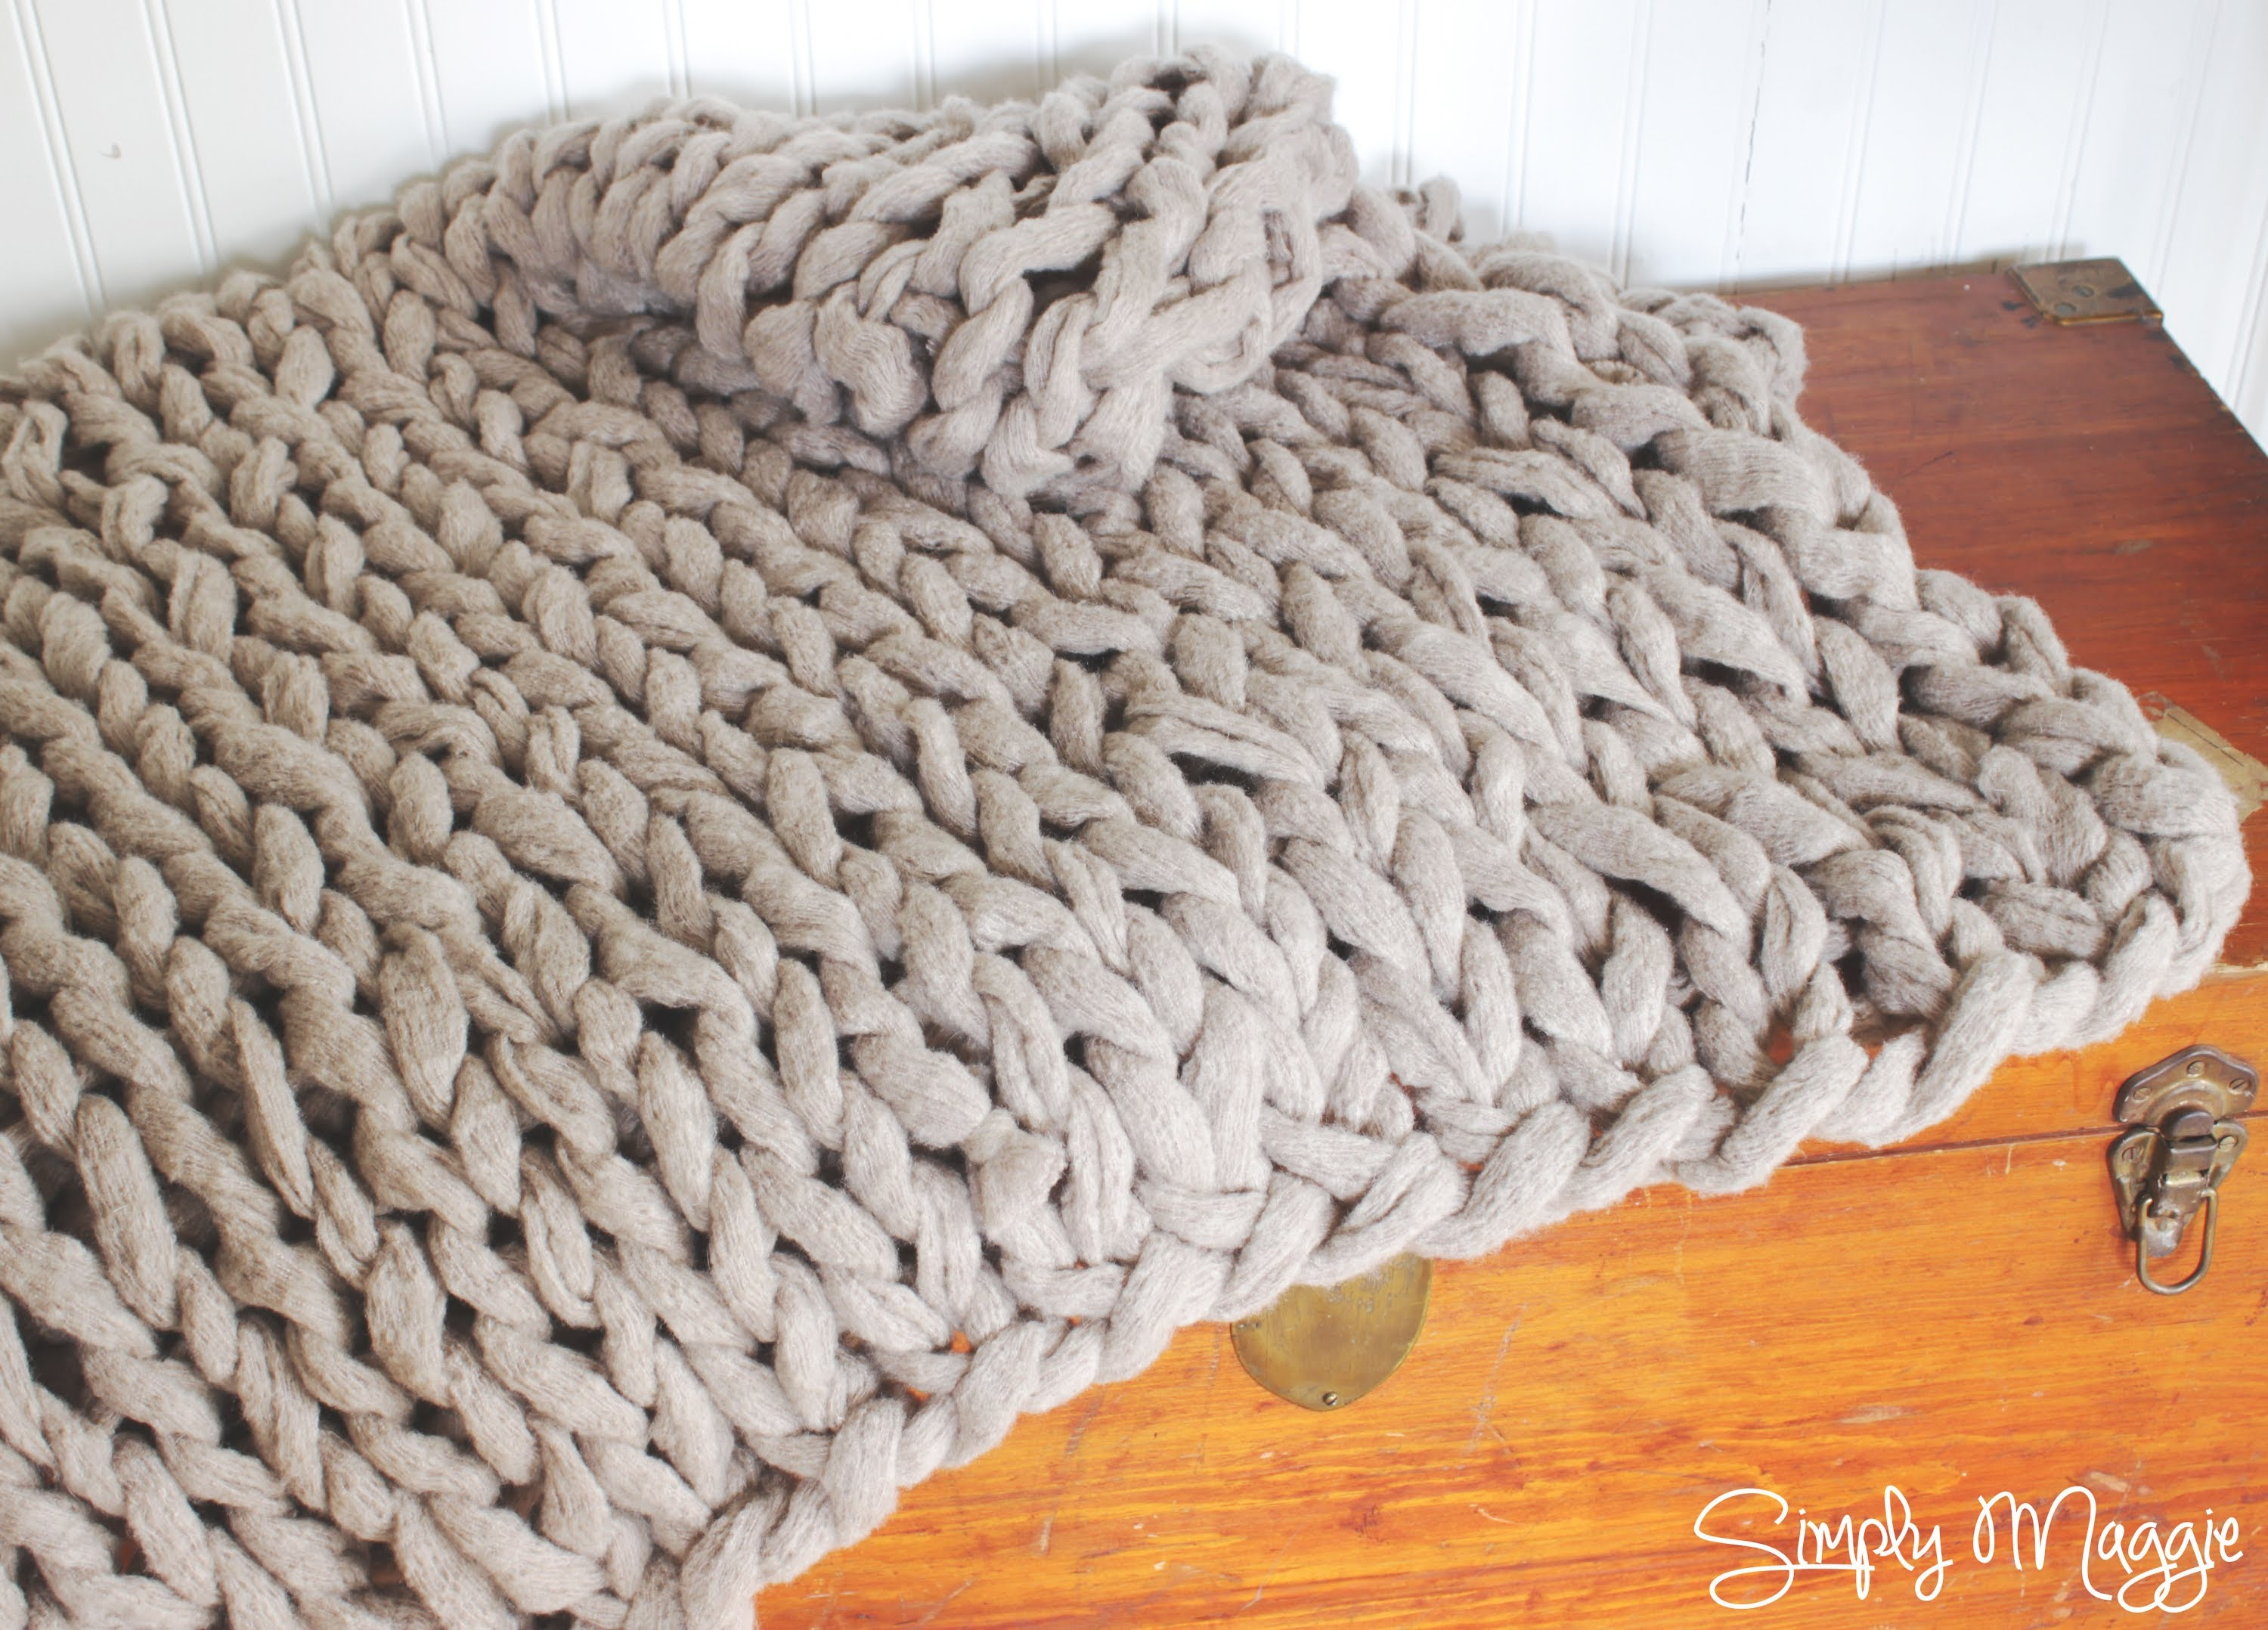 knit blanket how to arm knit a blanket in 45 minutes with simply maggie - youtube NFBXRKM